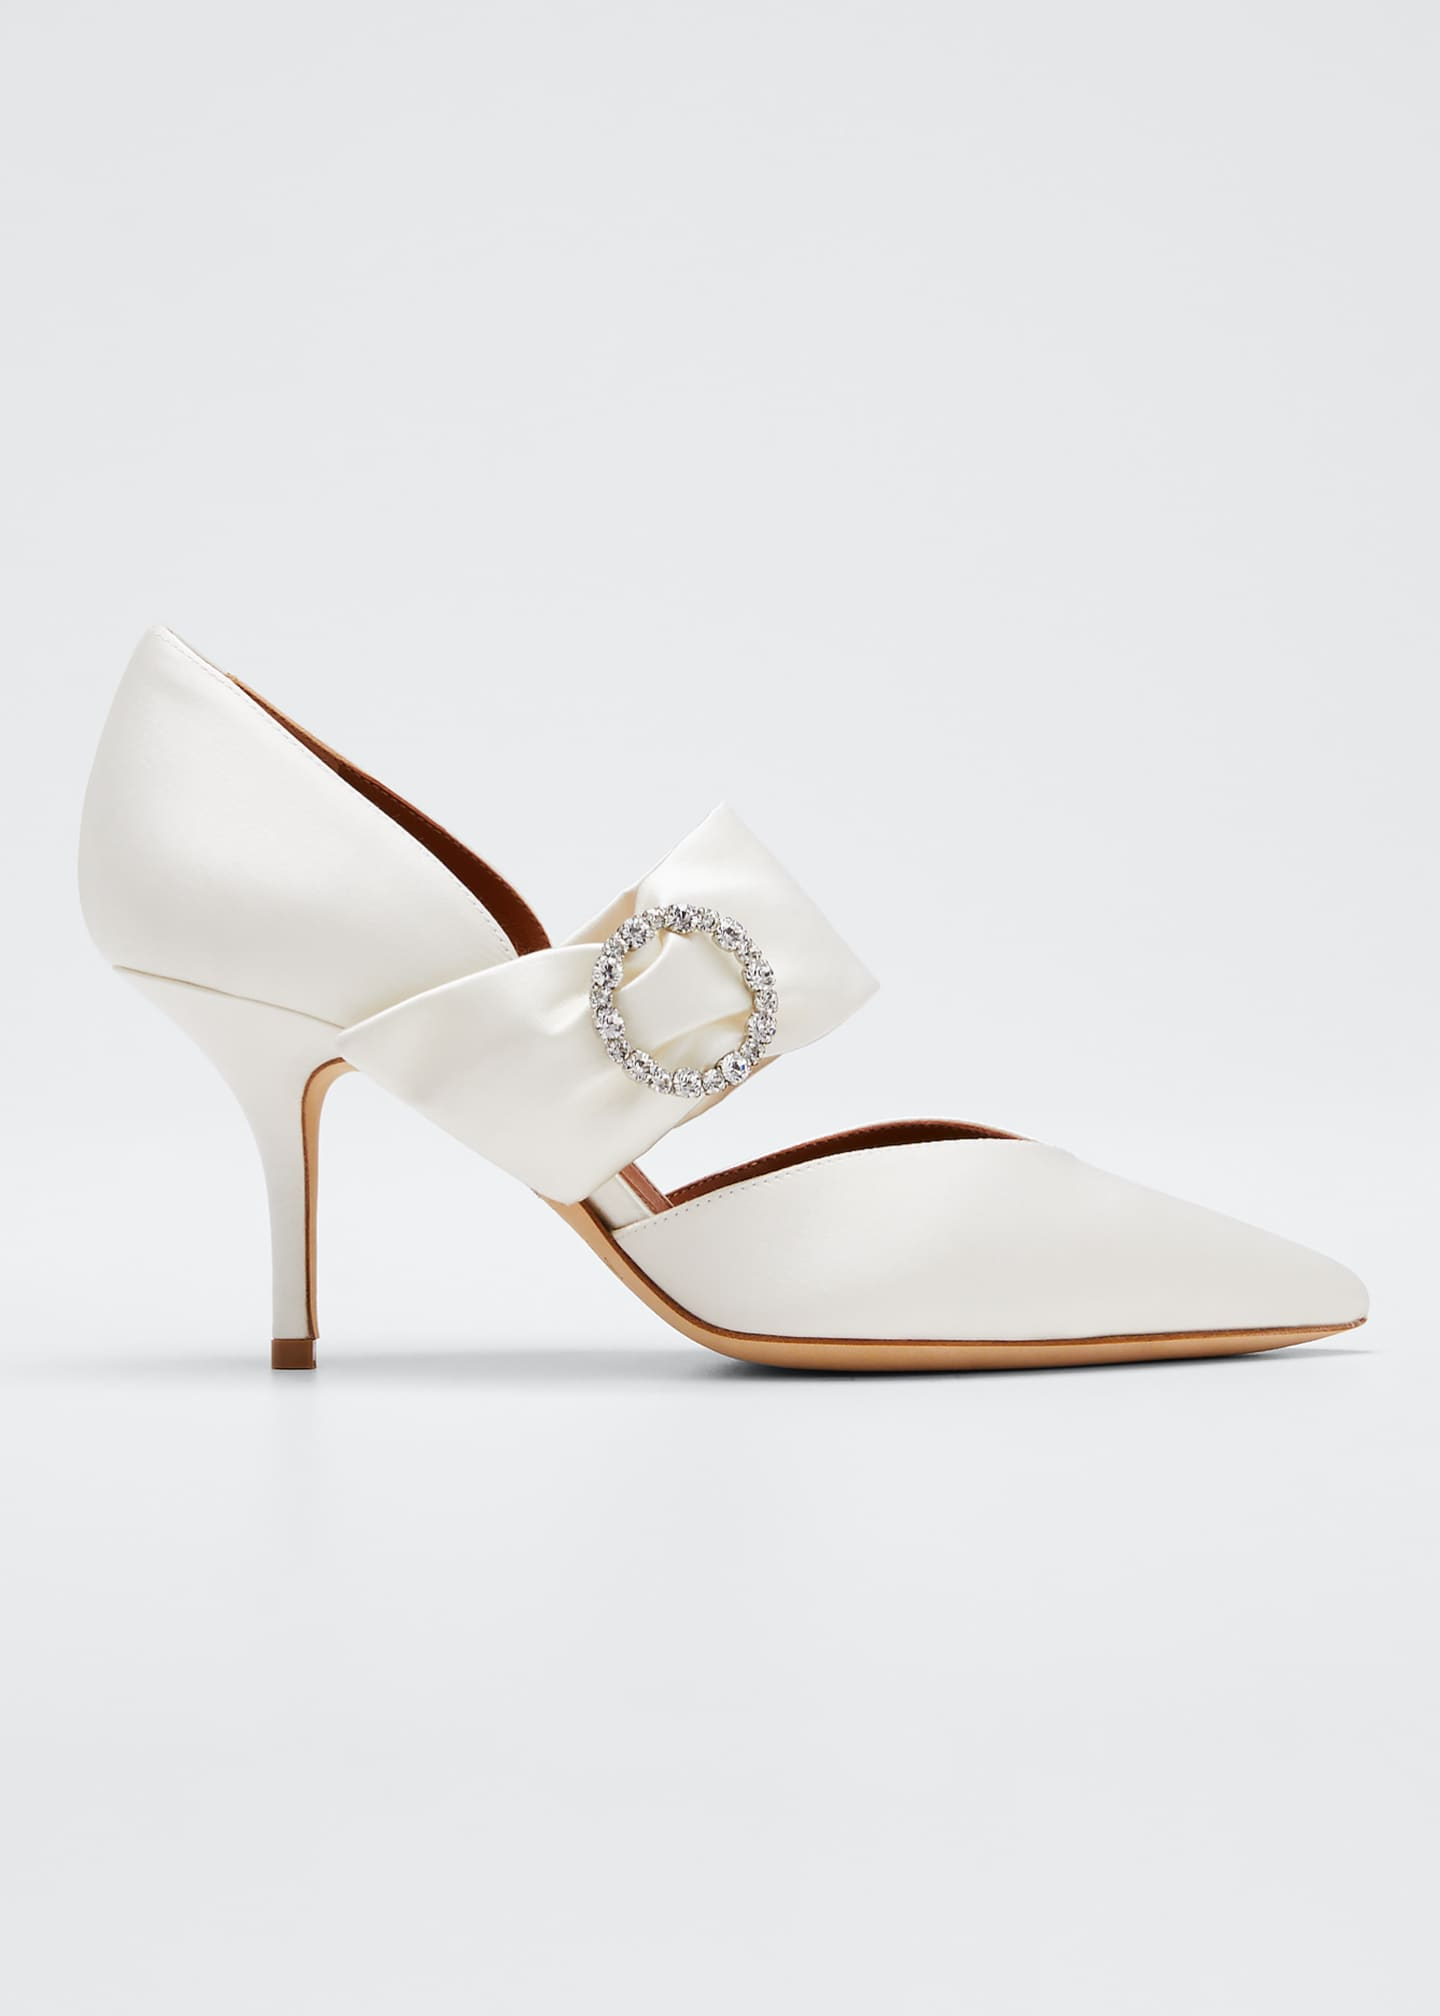 Malone Souliers Maite Crystal-Buckle Satin Point-Toe Pumps